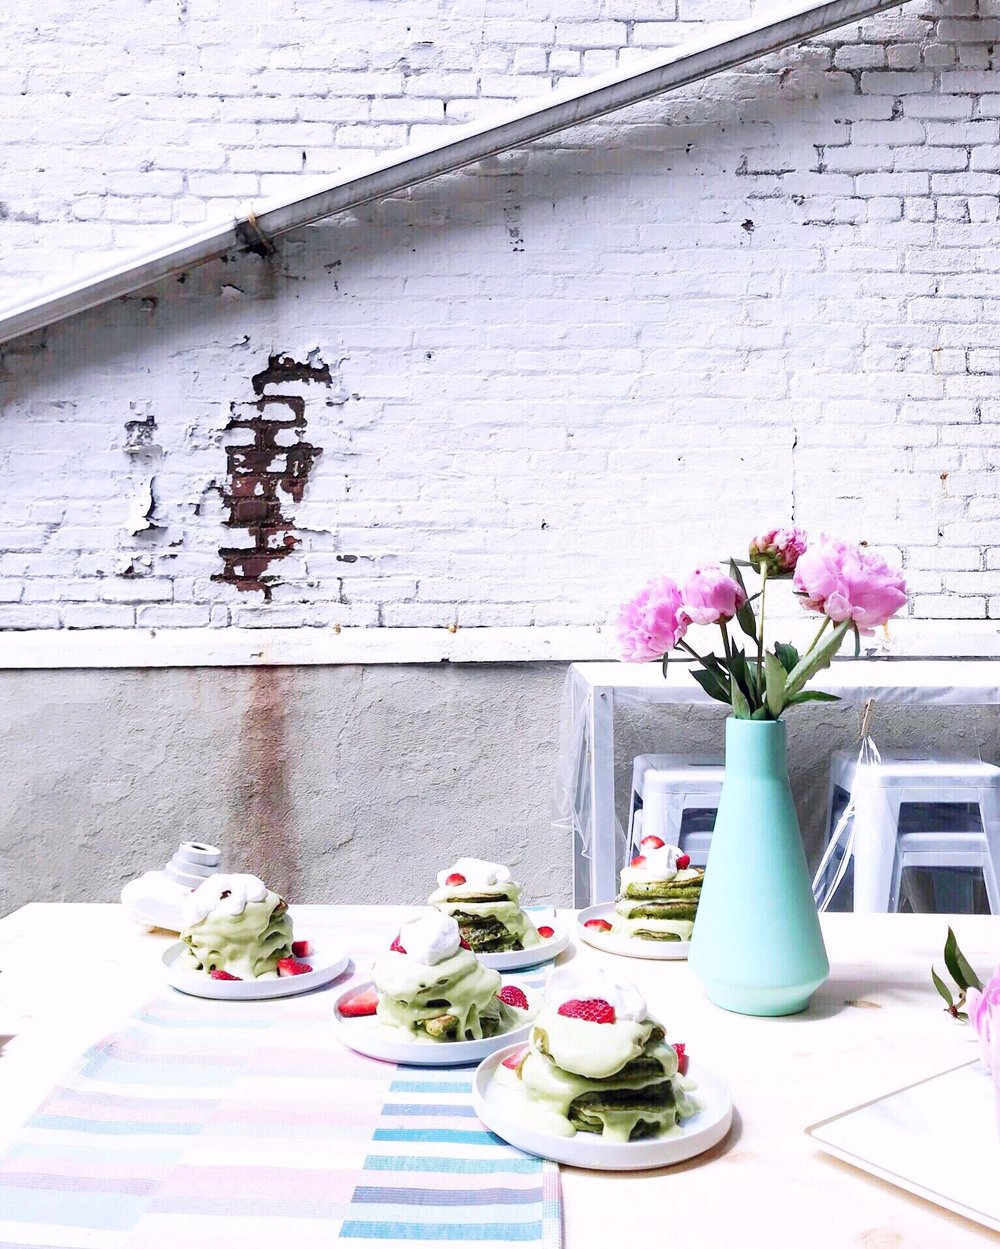 ma matcha pancakes brunch nyc